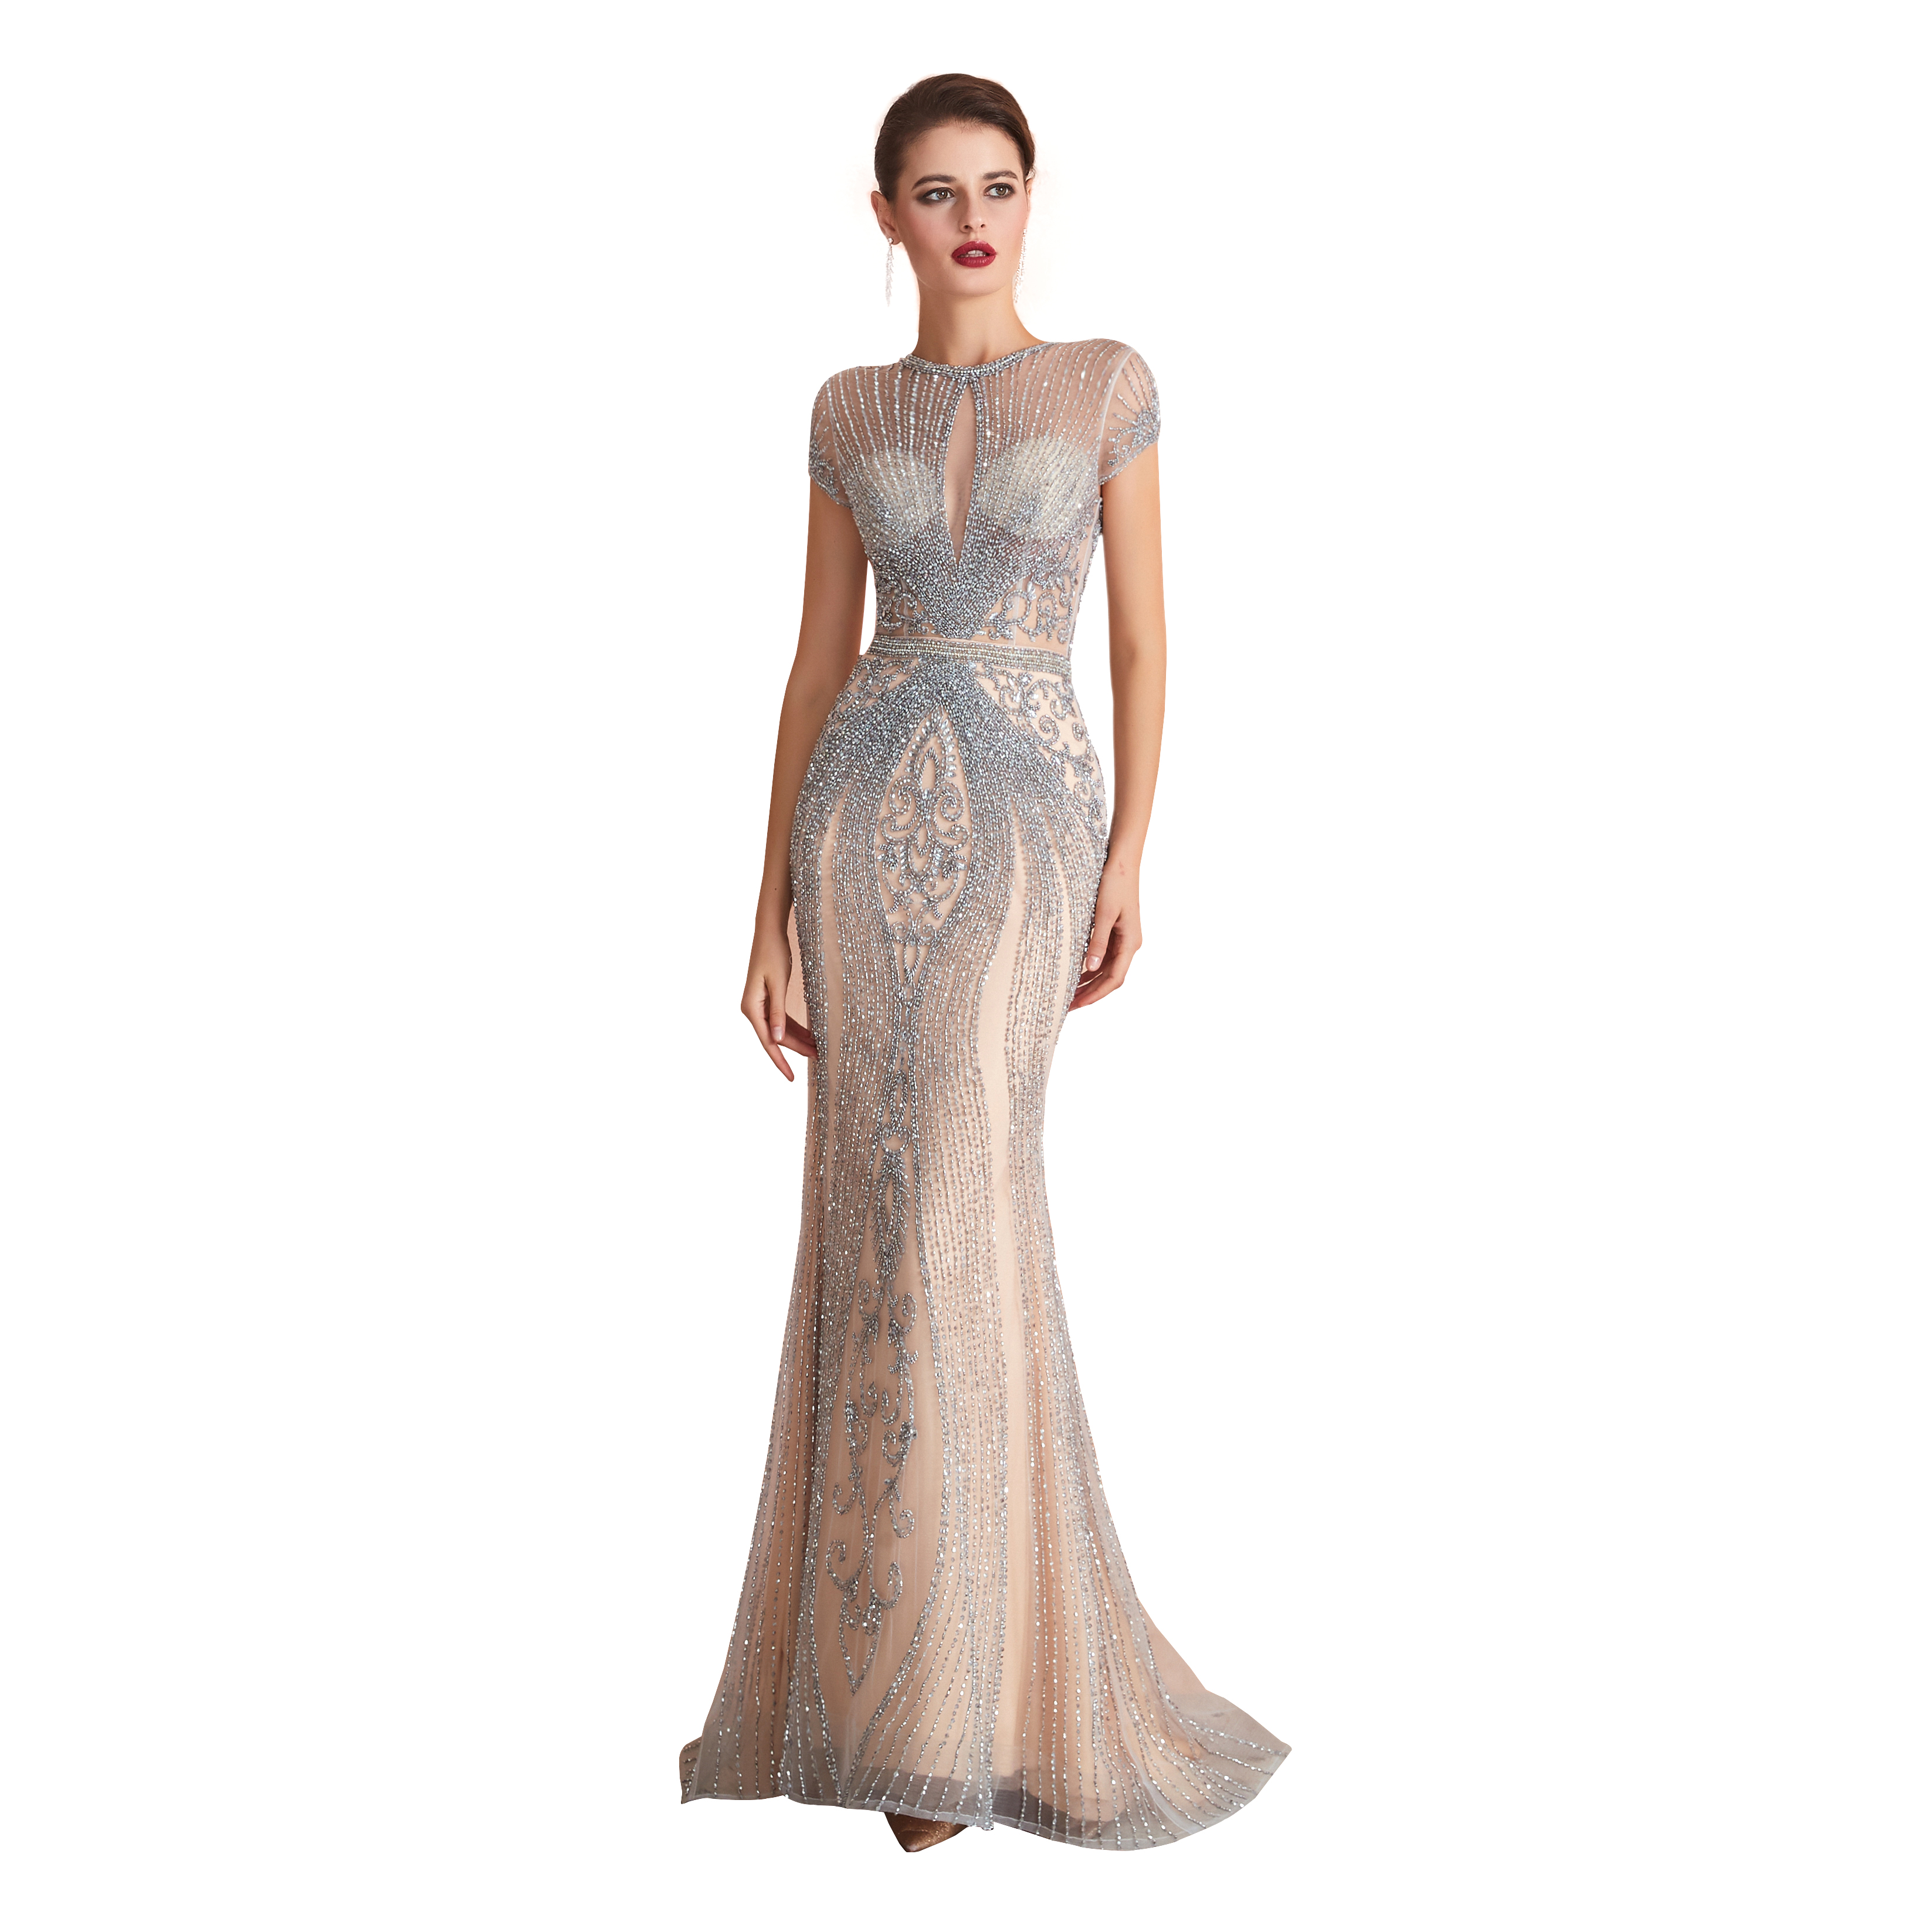 NEW 2020 St.Des Mermaid V-neck Russian Champagne Grey Blue Sequins Sleeveless Designer Floor Length Evening Dress Party Dress